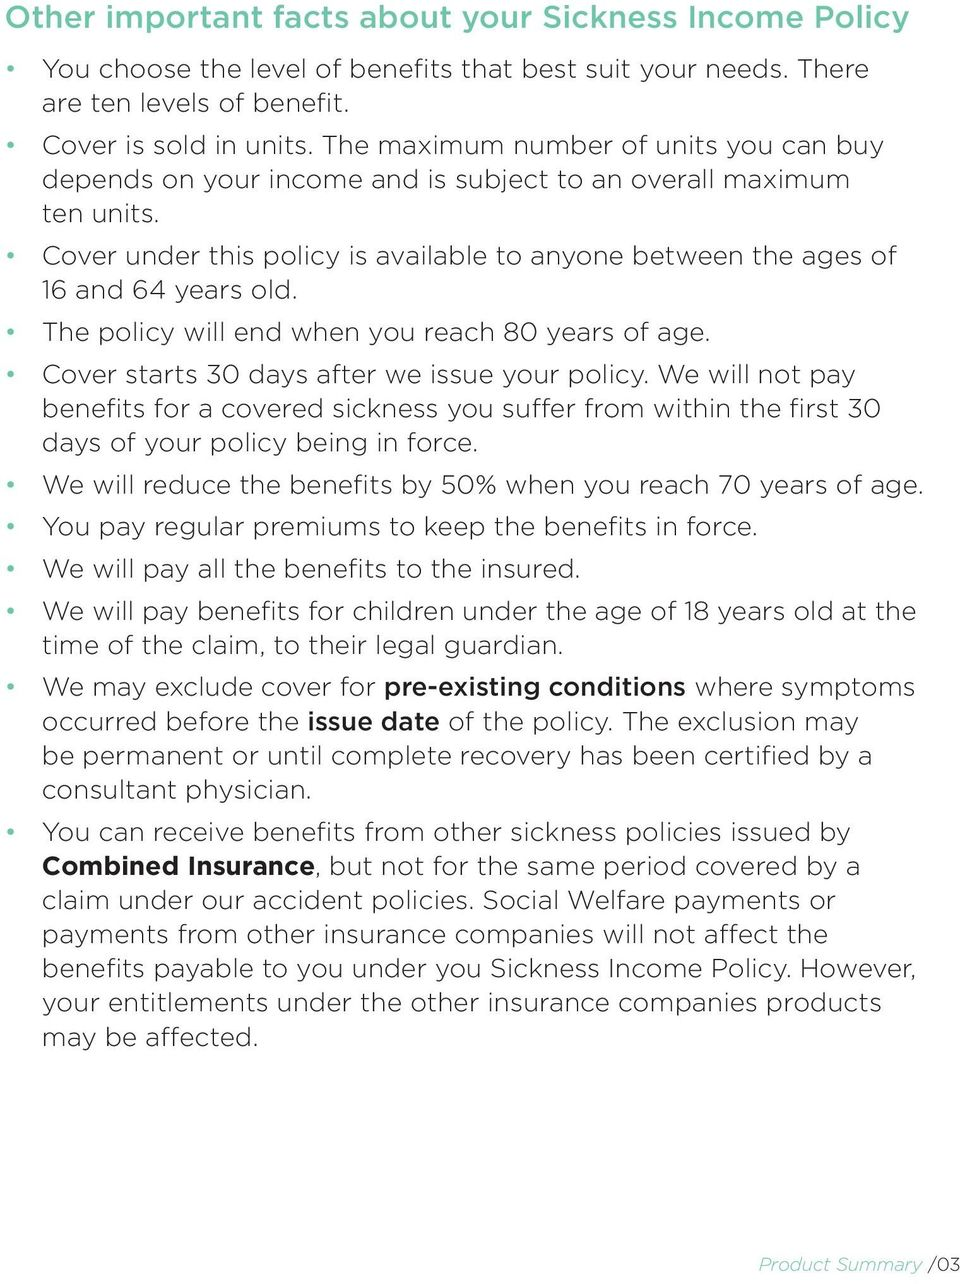 The policy will end when you reach 80 years of age. Cover starts 30 days after we issue your policy.